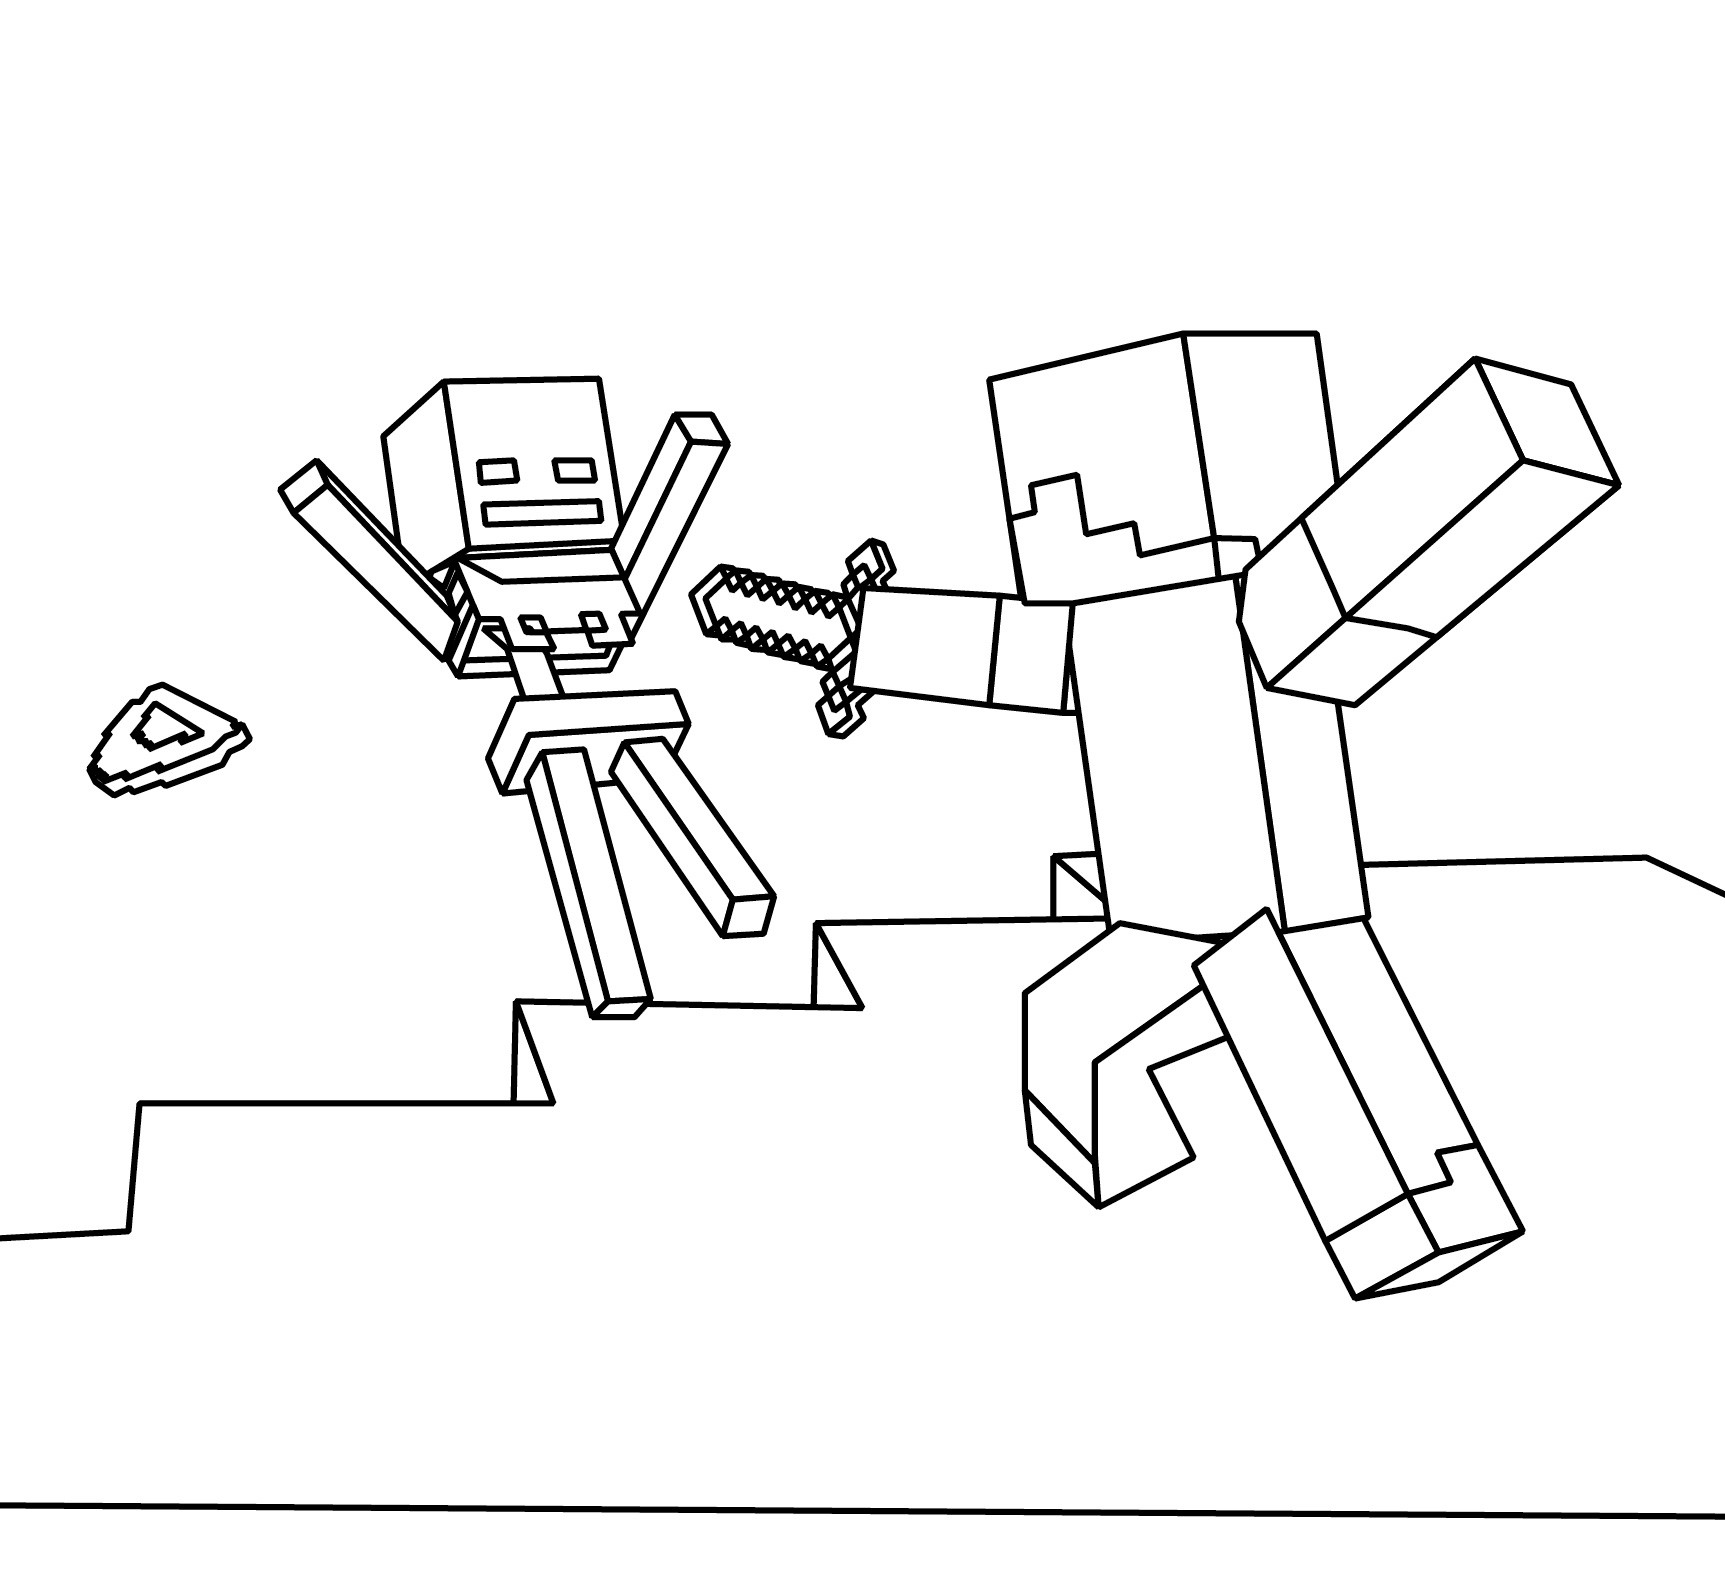 1725x1575 Unique Minecraft Coloring Pages To Print Of Steve Diamond